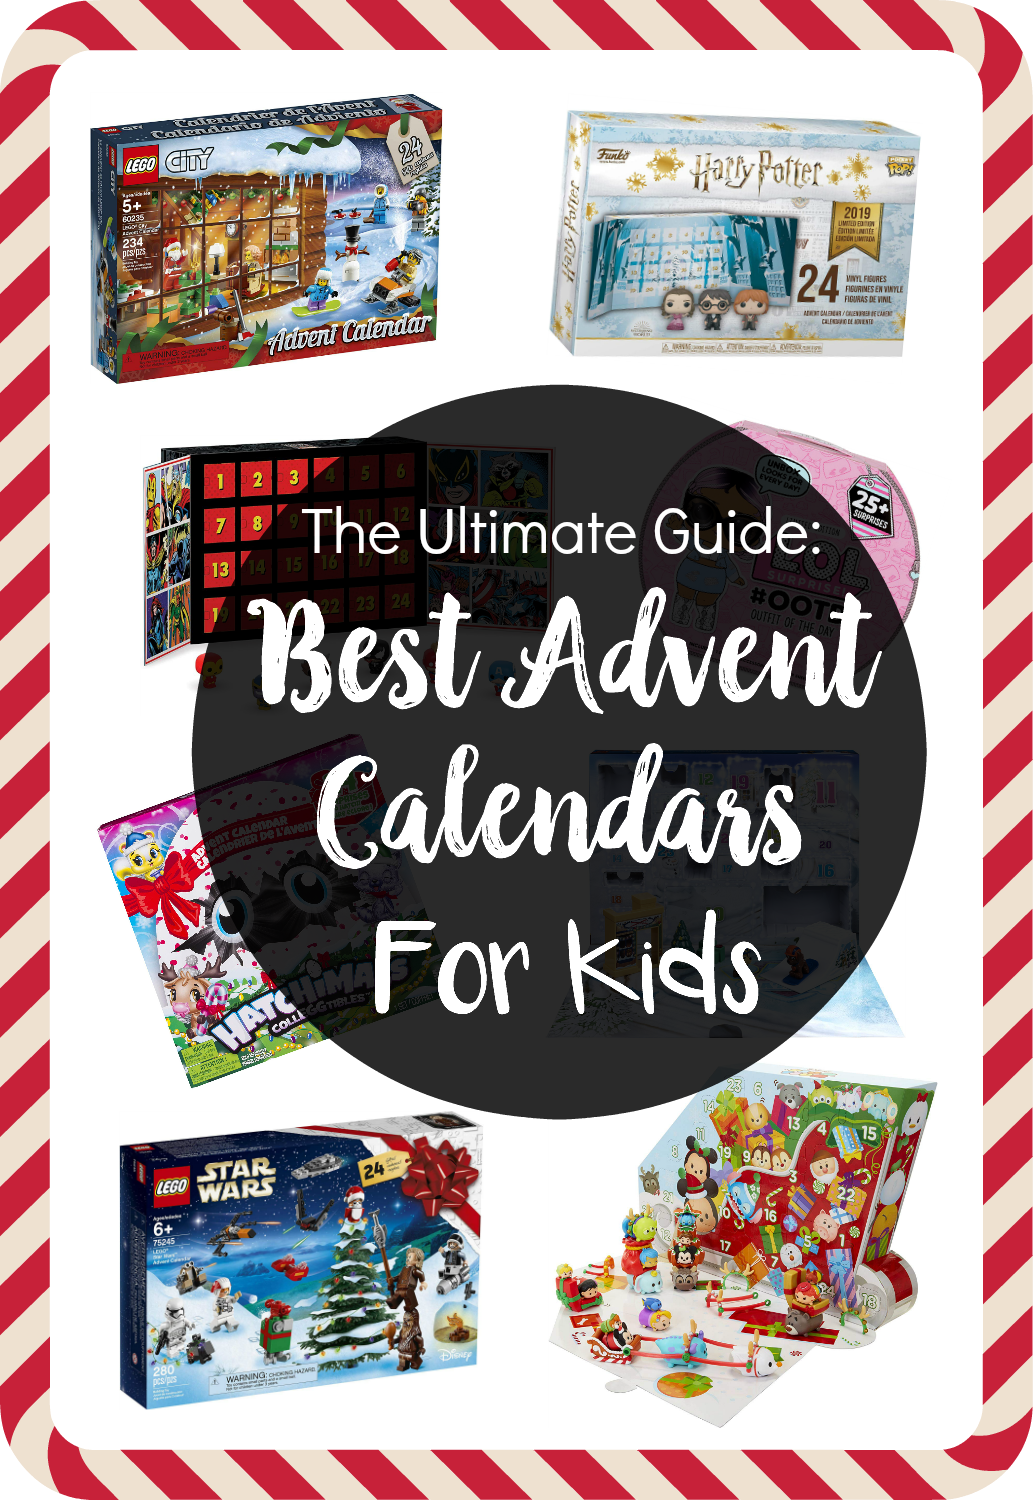 Advent Calendars For Kids, Kids Advent Calendars, Advent Calendars, Best Advent Calendars, Christmas Gifts, Gifts for Kids, #AdventCalendar